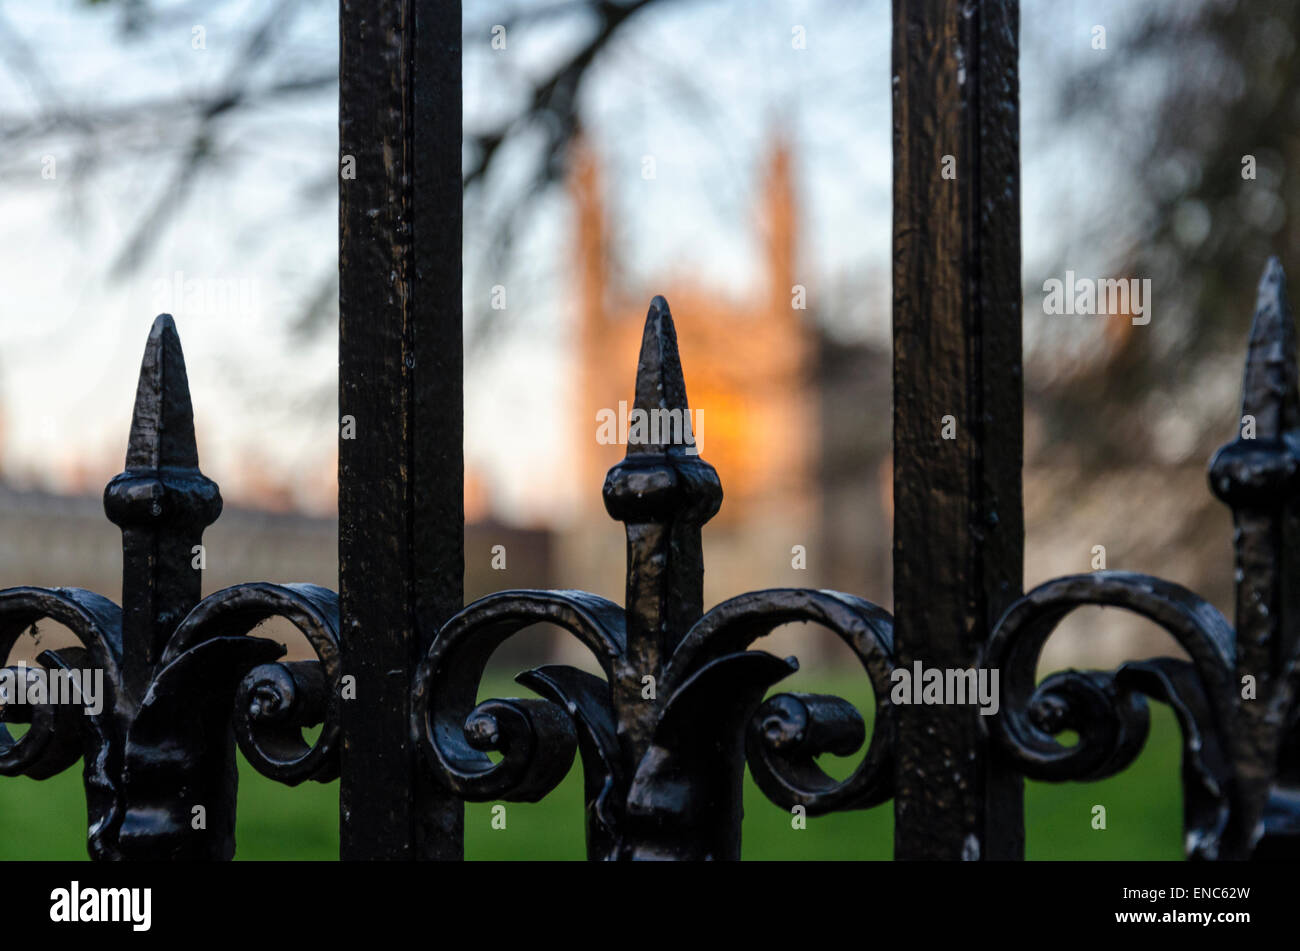 King's College Chapel at sunset, Cambridge - Stock Image